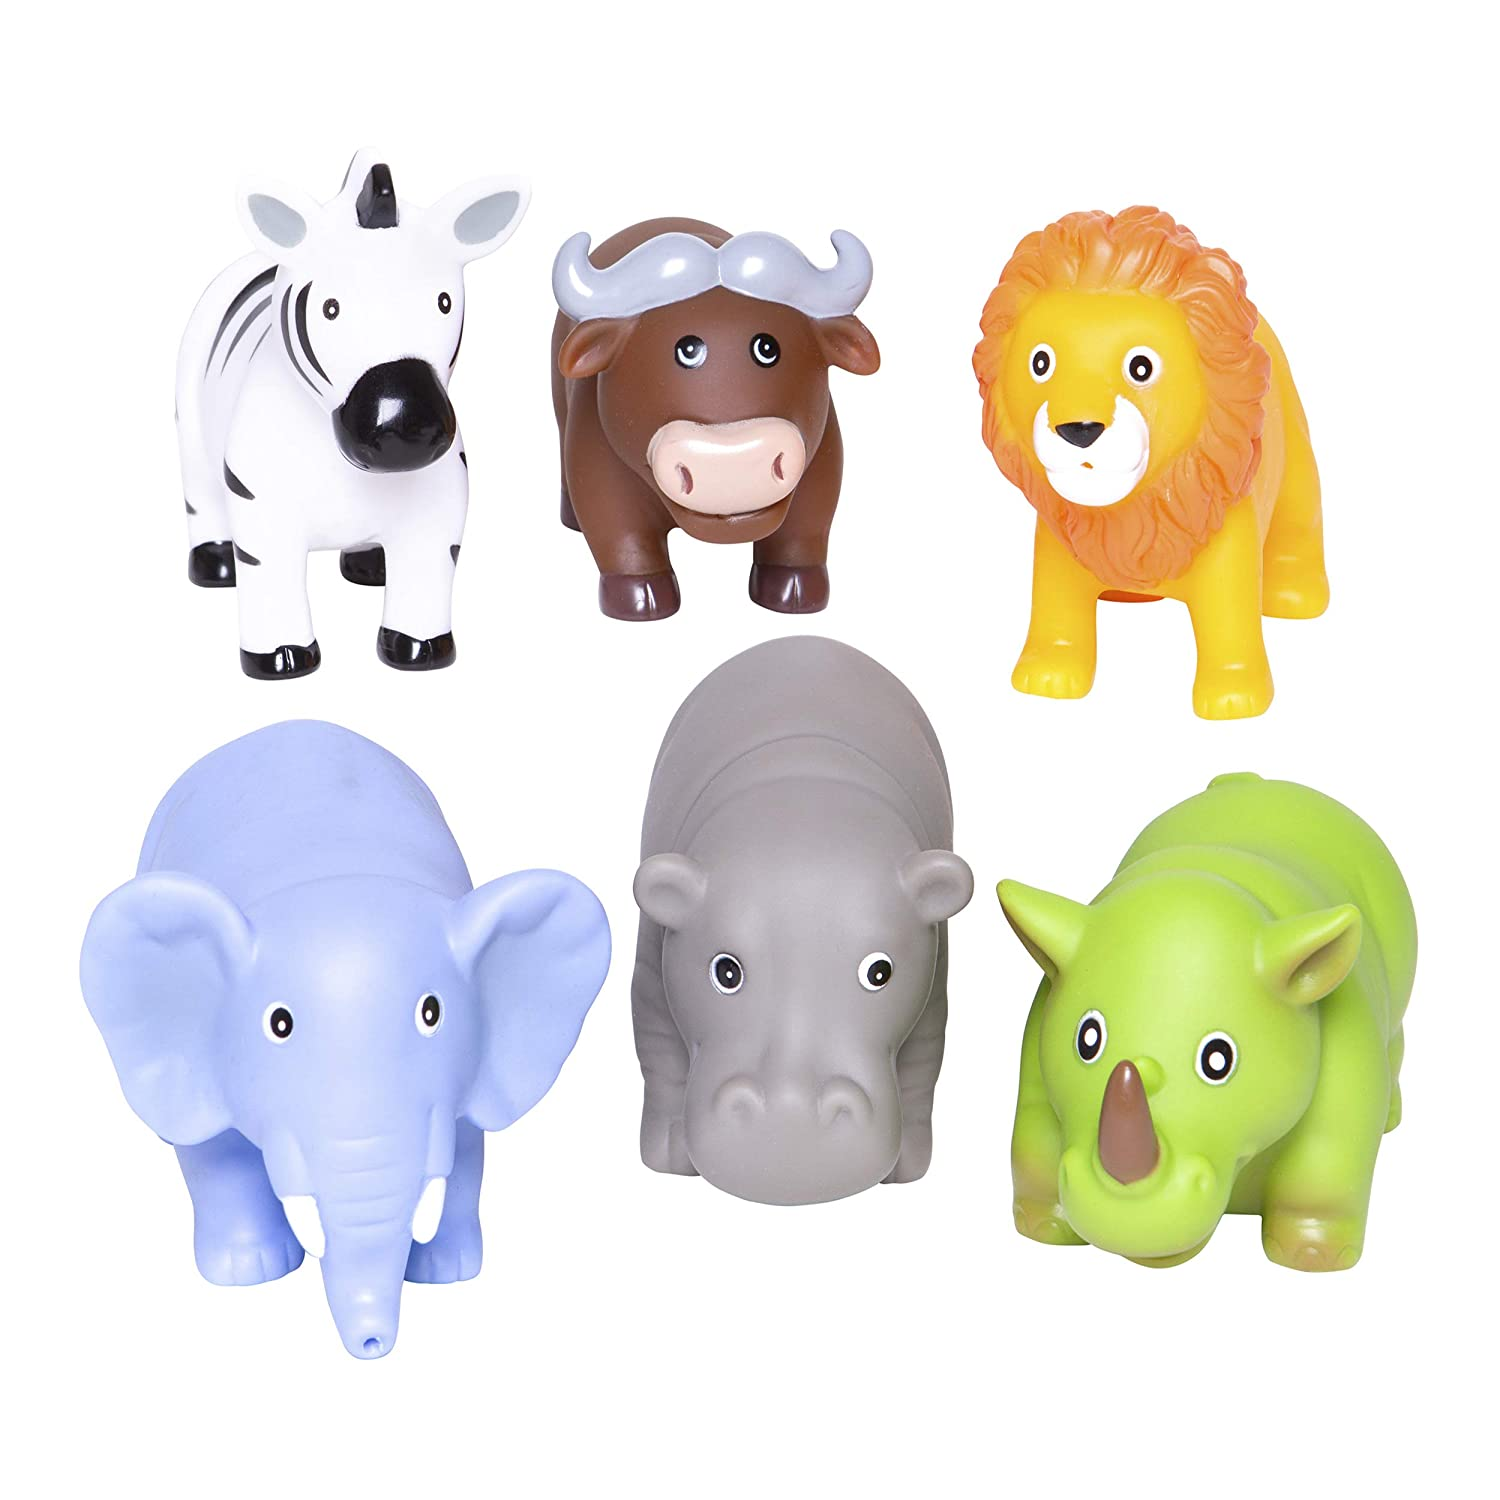 Amazon.com : Elegant Baby Bath Time Fun Rubber Water Squirties, Jungle  Party Bath Squirt Toys : Baby